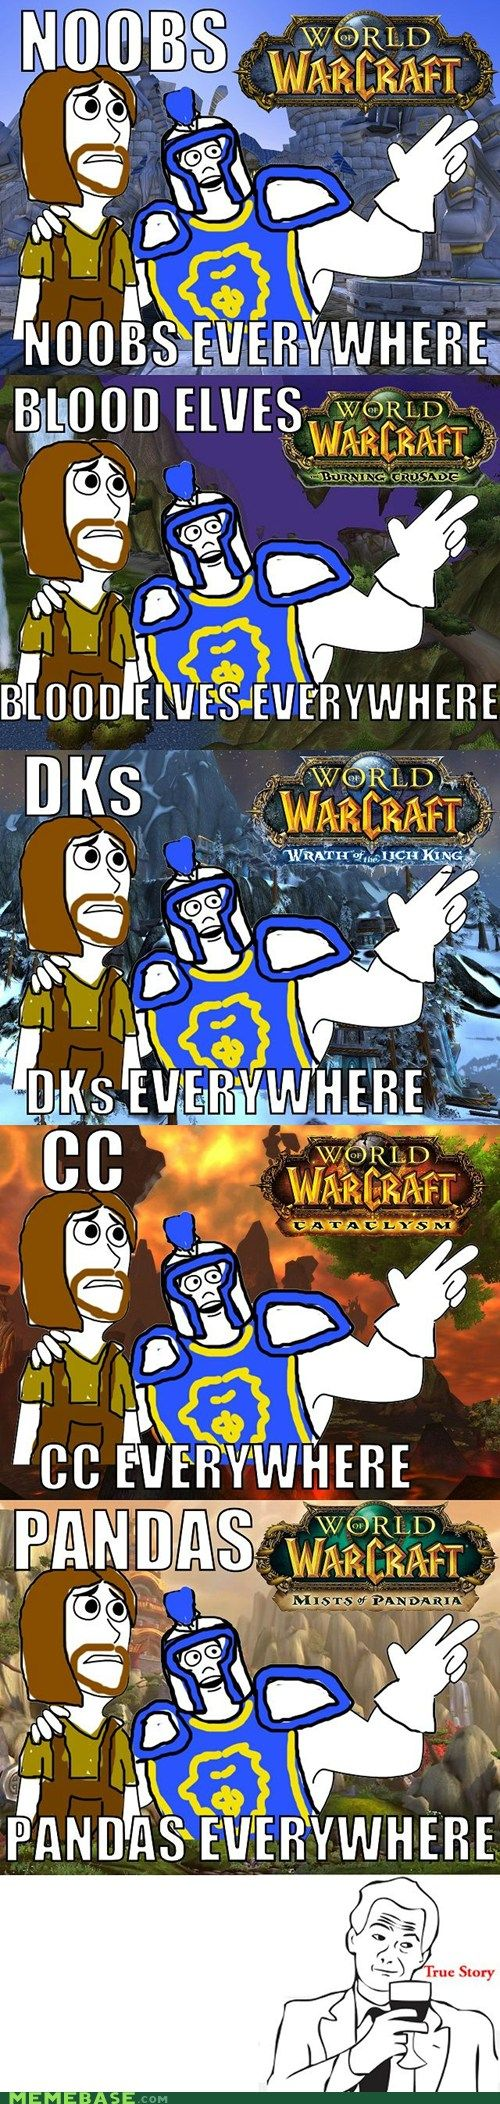 World of Warcraft: Warlords or Dreanor. Paladins. Paladins everywhere. And now World of Warcraft: Legion. Demon Hunters. Demom Hunters everywhere.